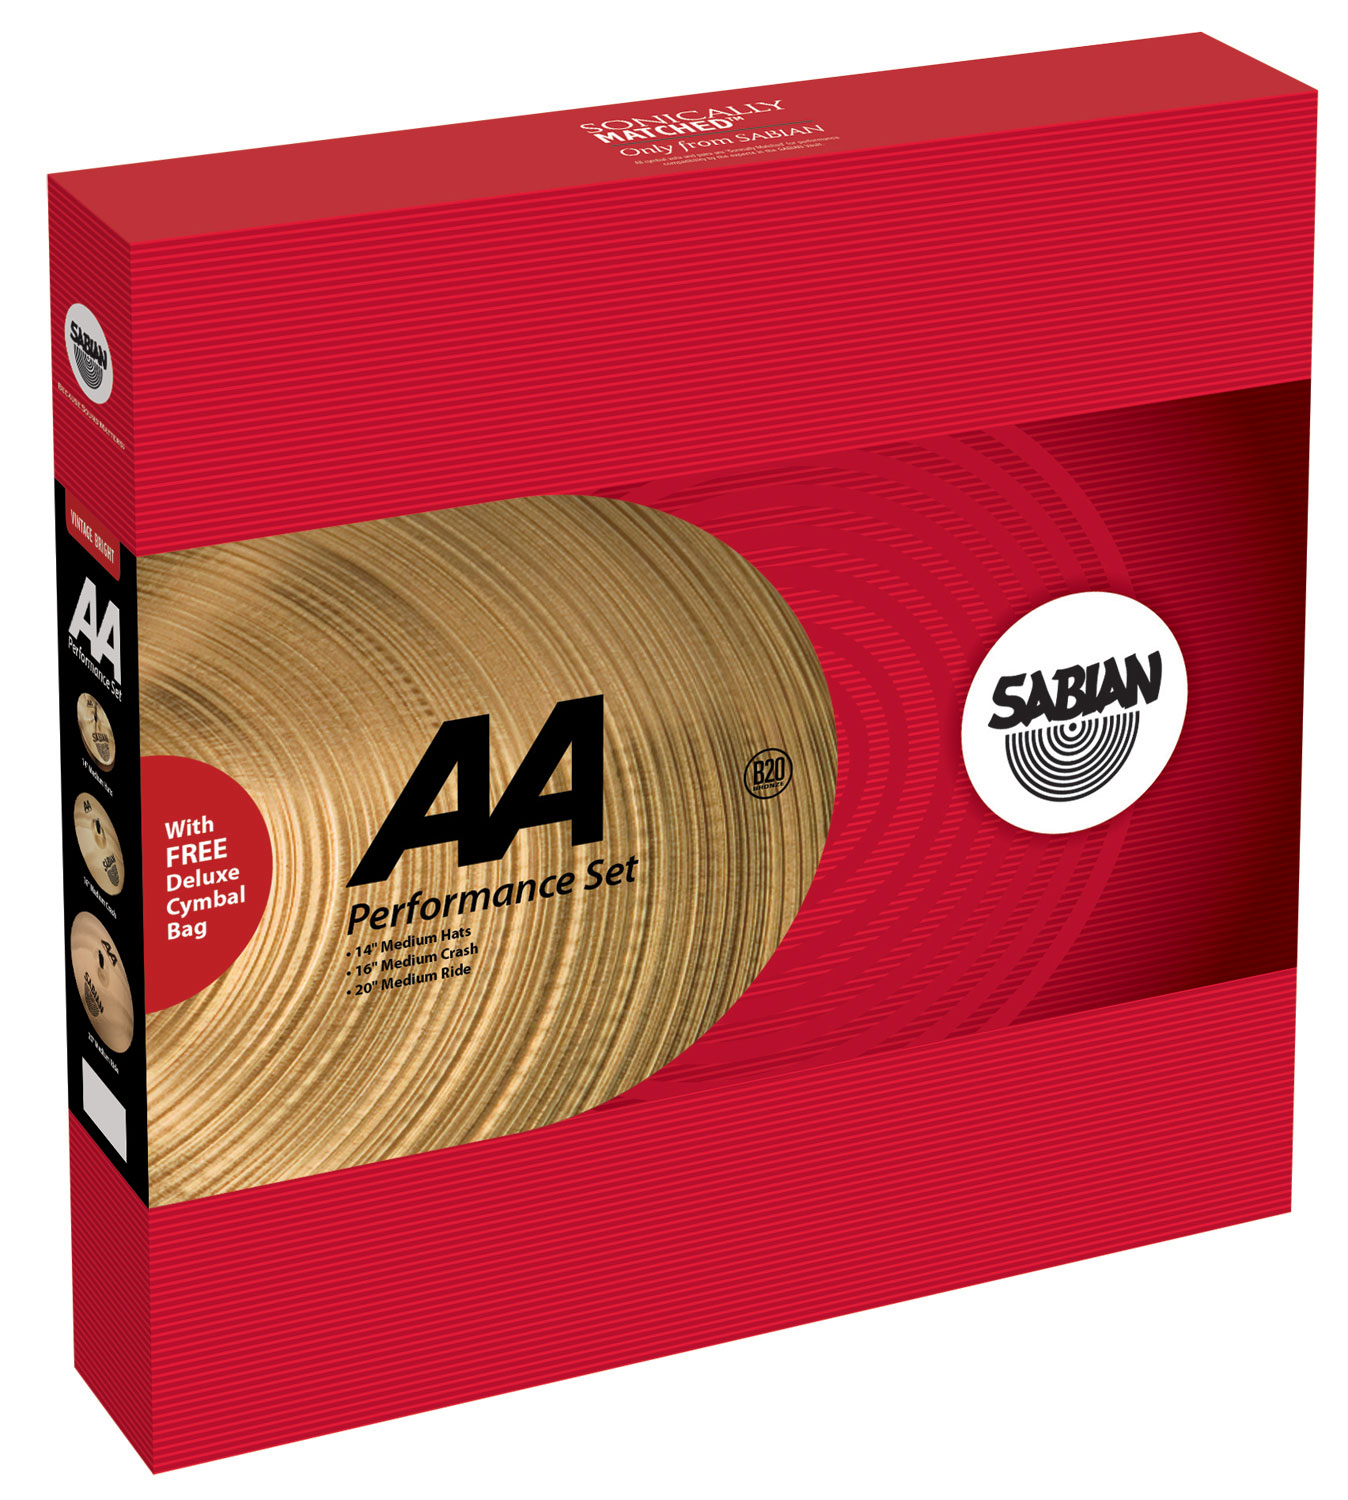 Sabian AA Performance Pack 3-Piece Cymbal Box Set (Hi Hats, Crash, Ride)